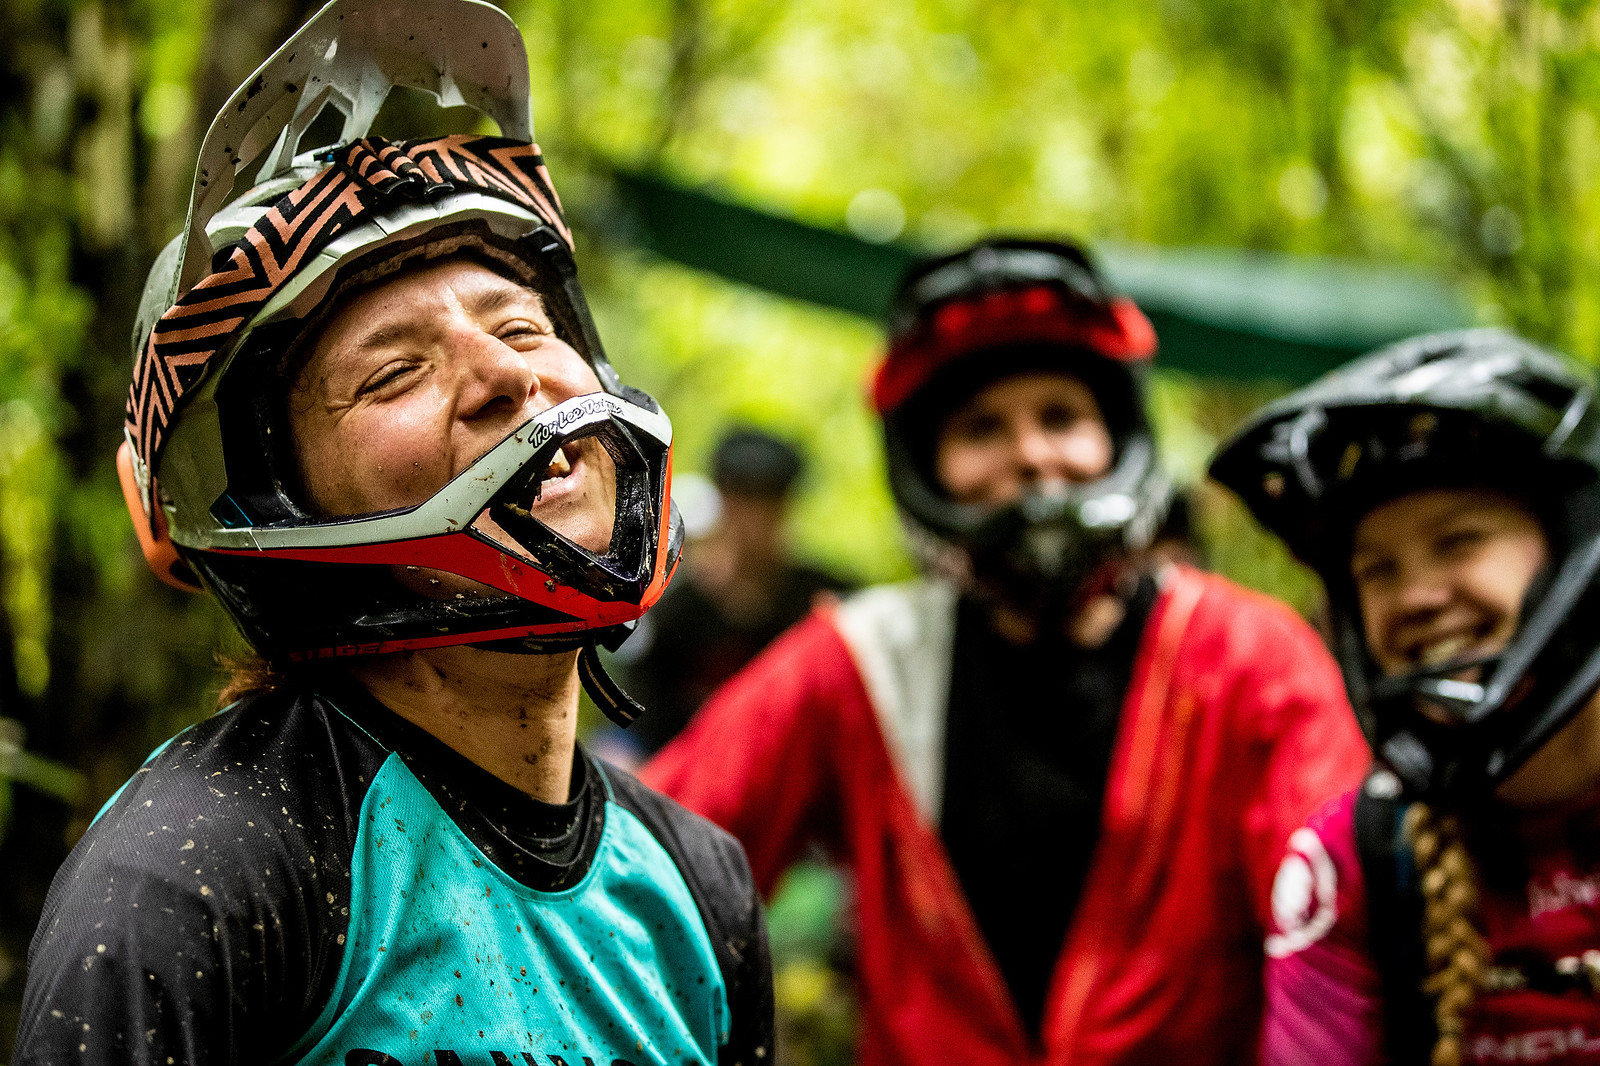 NZEnduro19  m1 8470 - 2019 NZ Enduro Day 2 Photo Gallery - Mountain Biking Pictures - Vital MTB